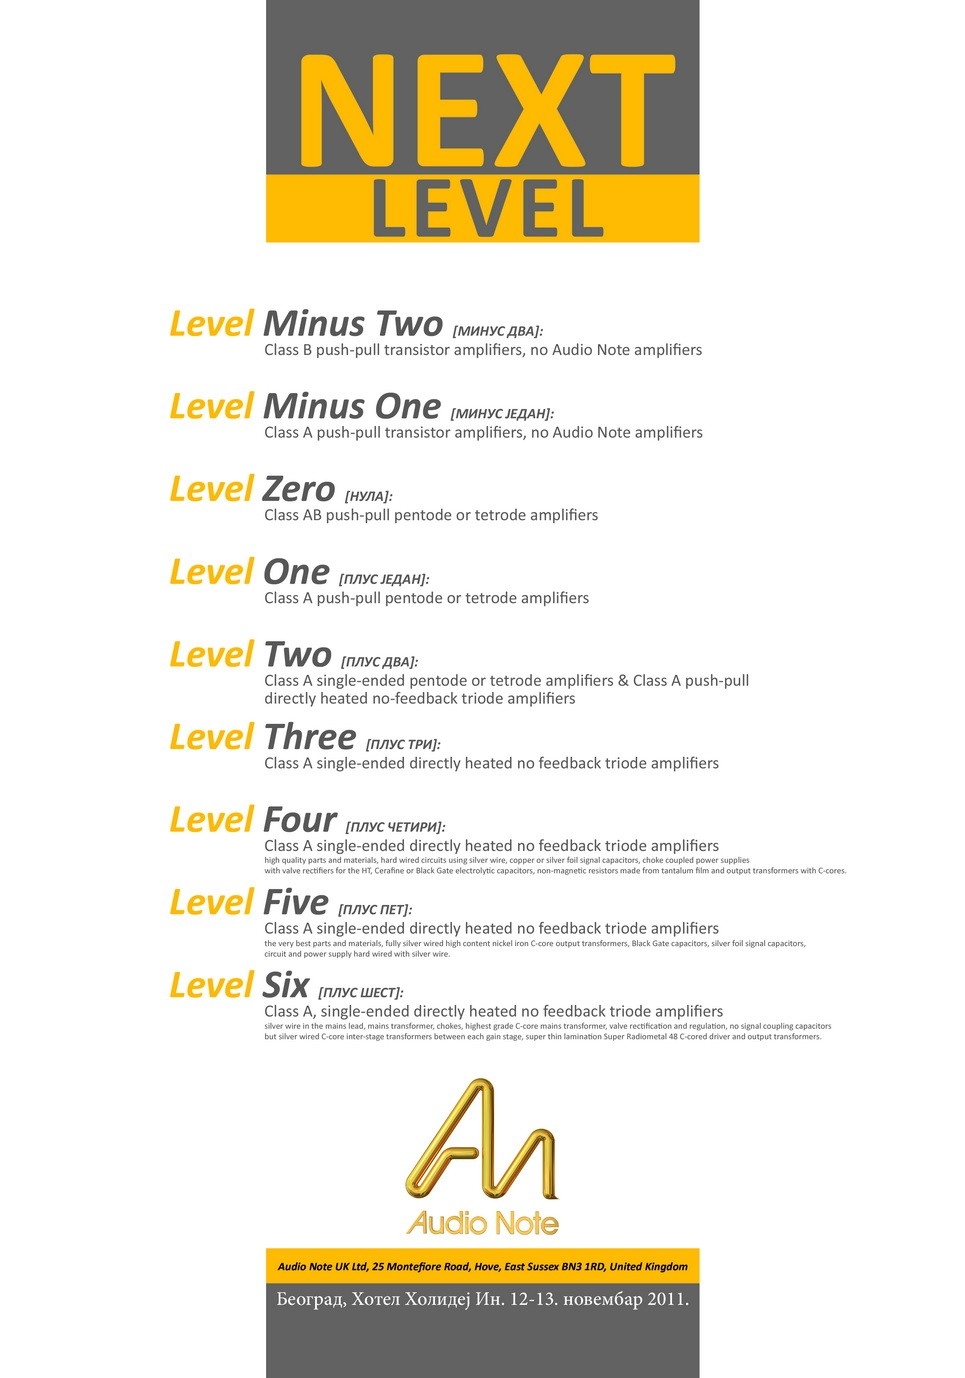 AN Level system